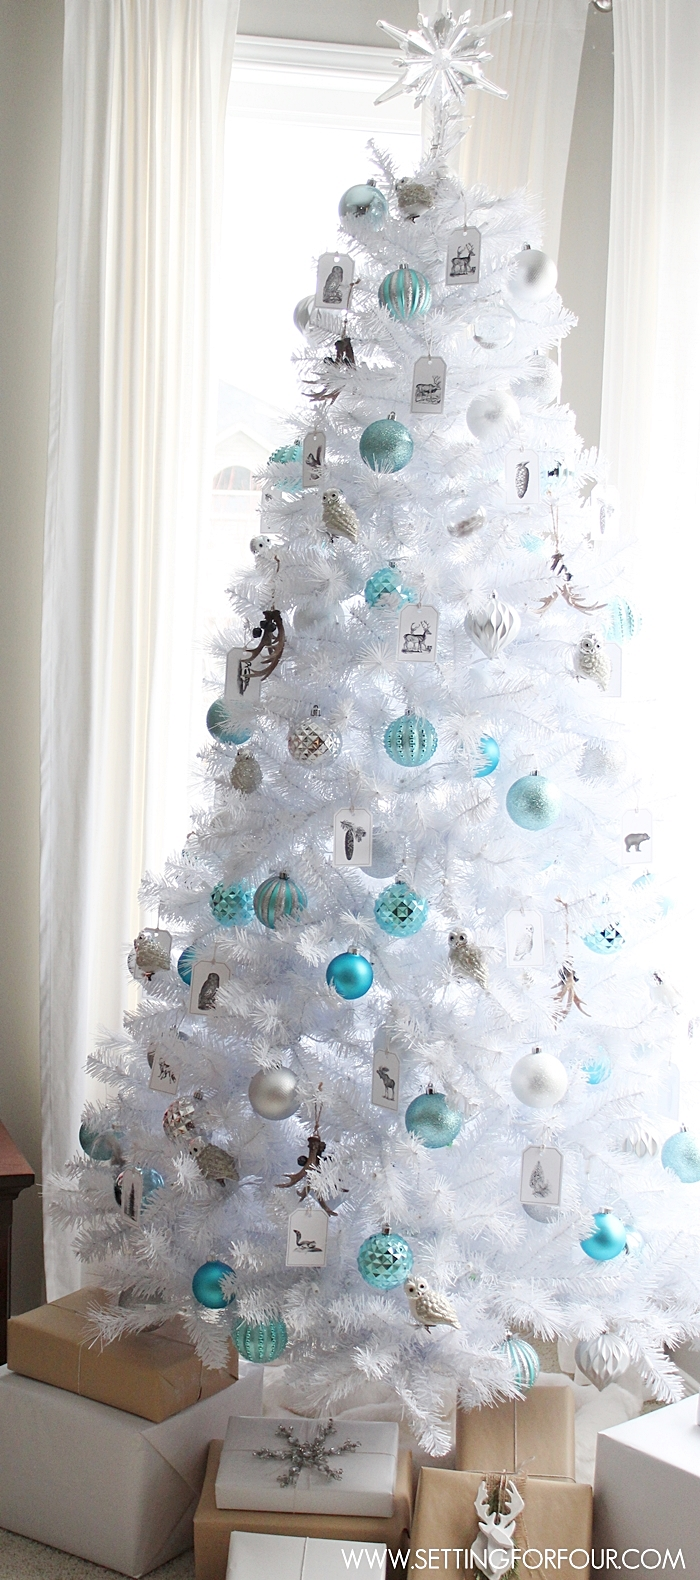 Charmant Blue White Christmas Tree Decor